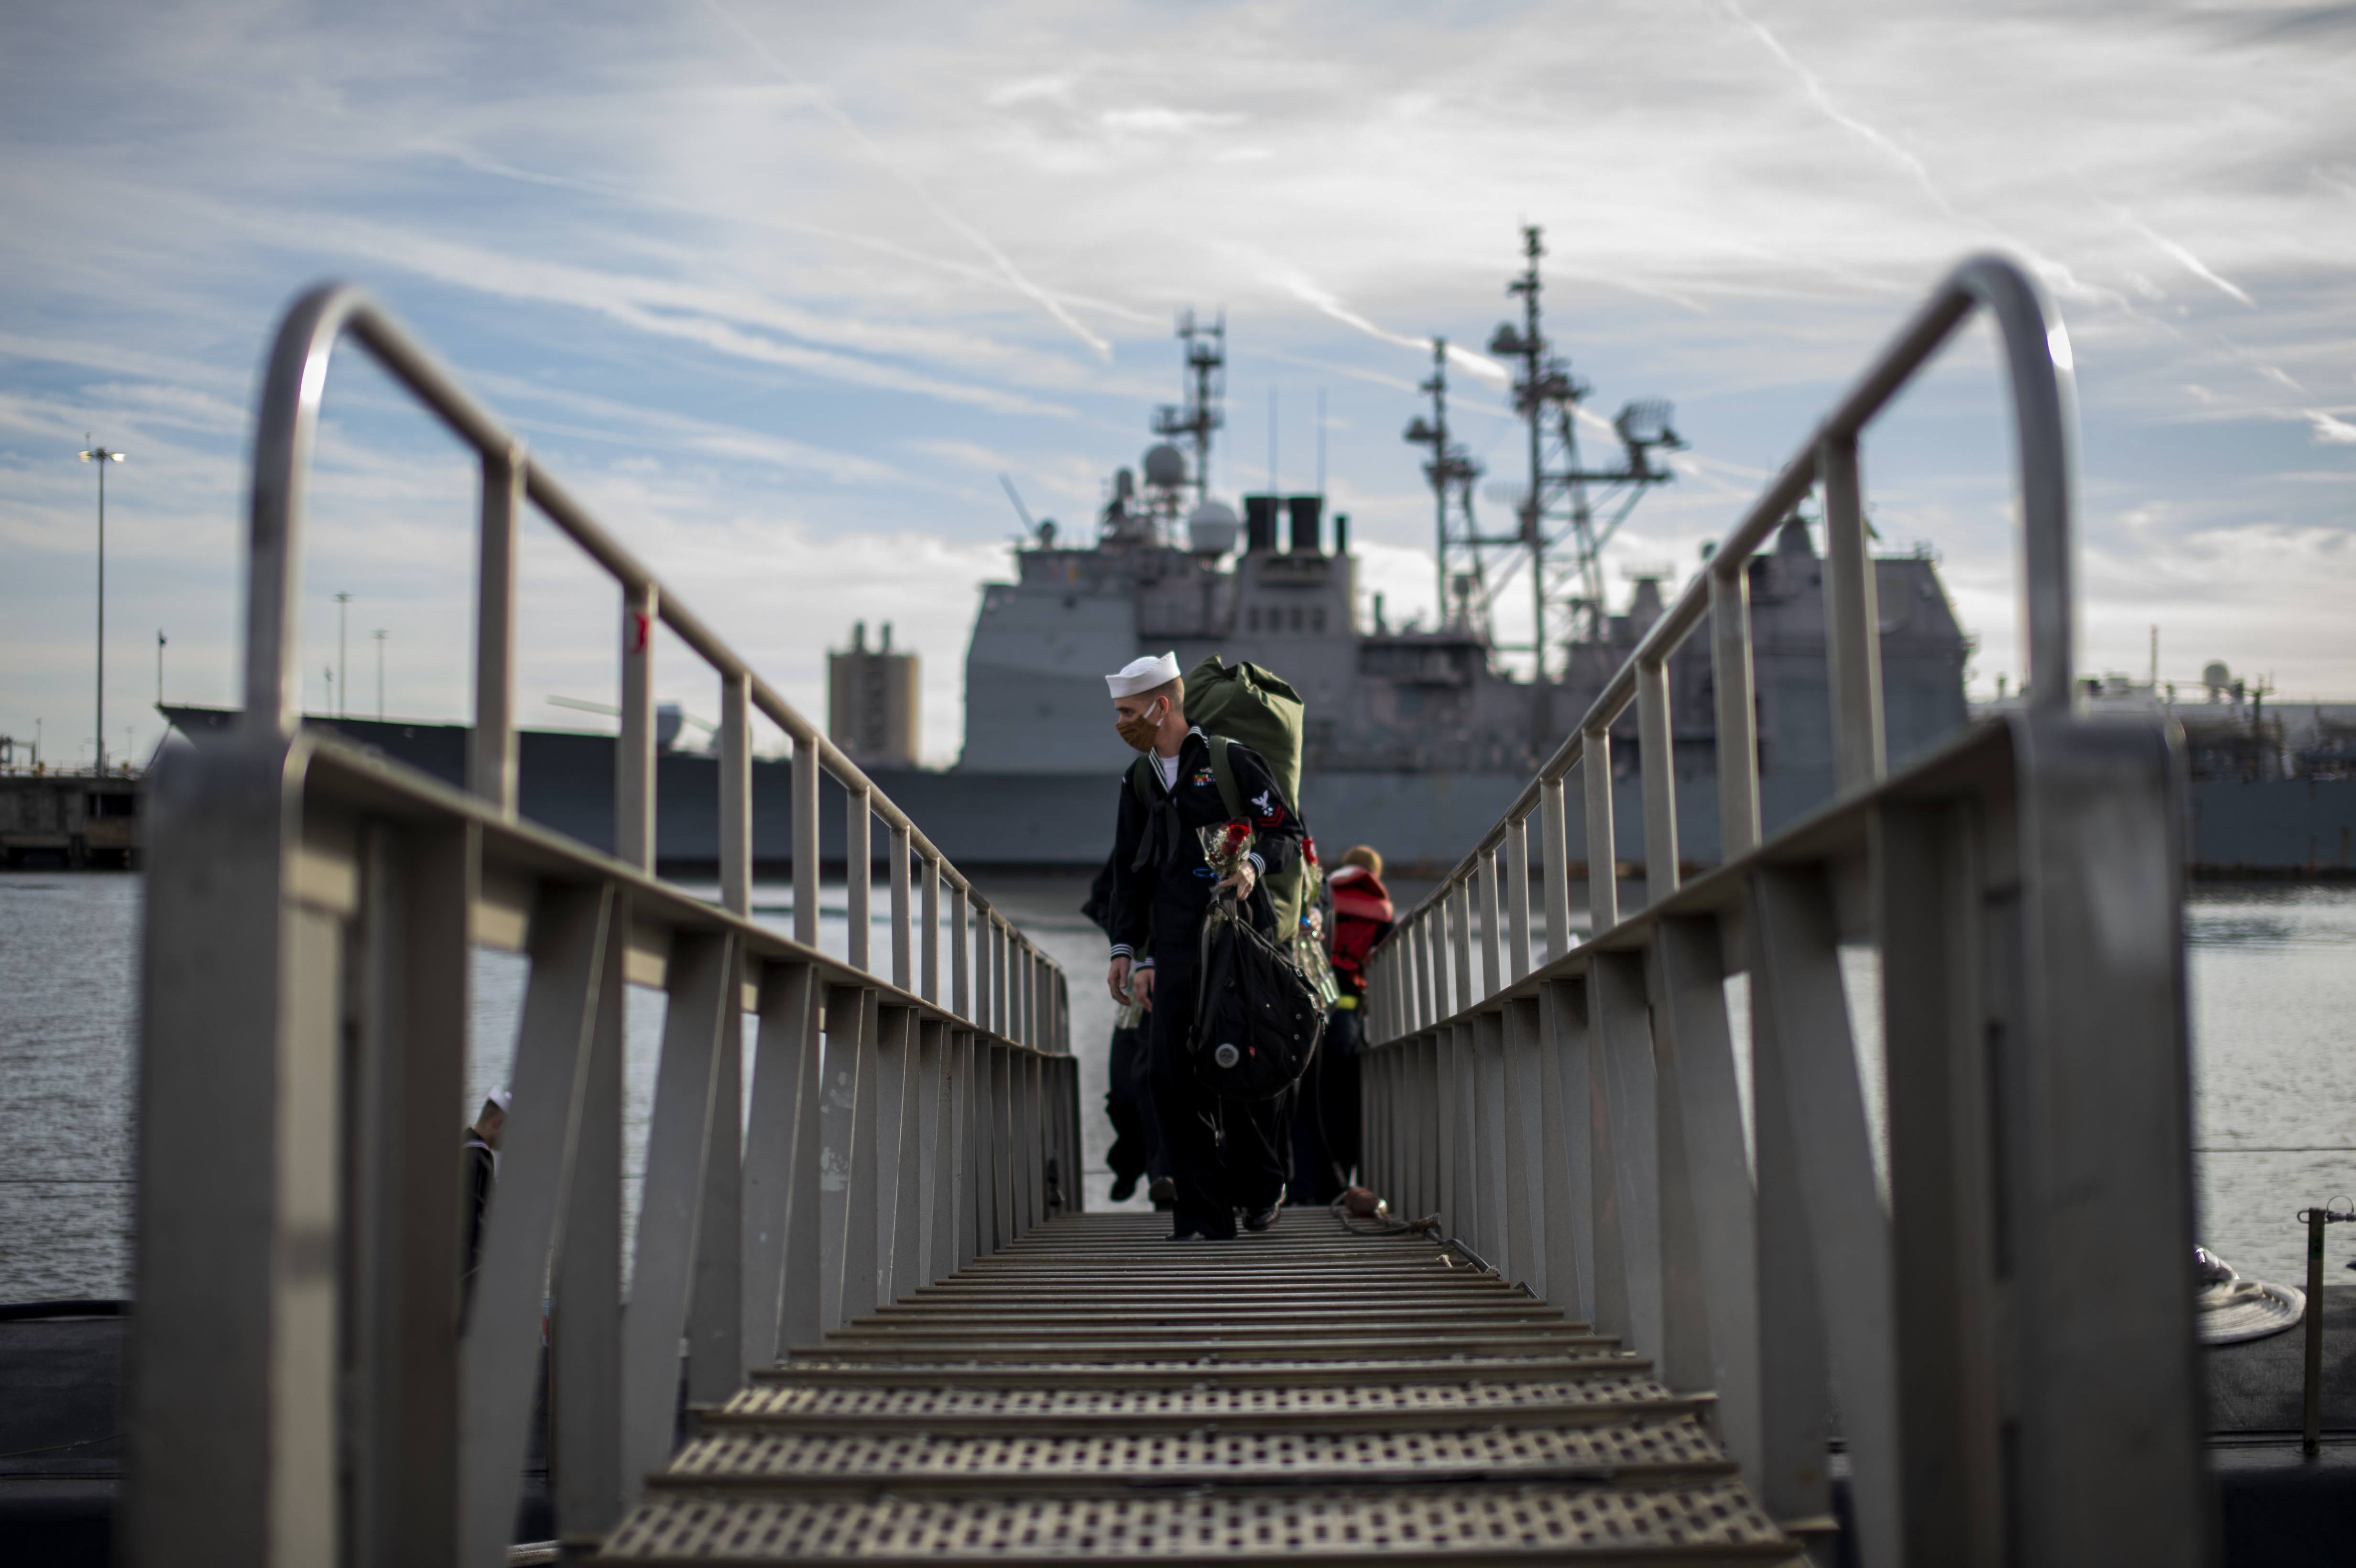 Sailors assigned to the Virginia-class fast-attack submarine USS John Warner (SSN 785) disembark from the boat at Naval Station Norfolk, Nov. 25, 2020.